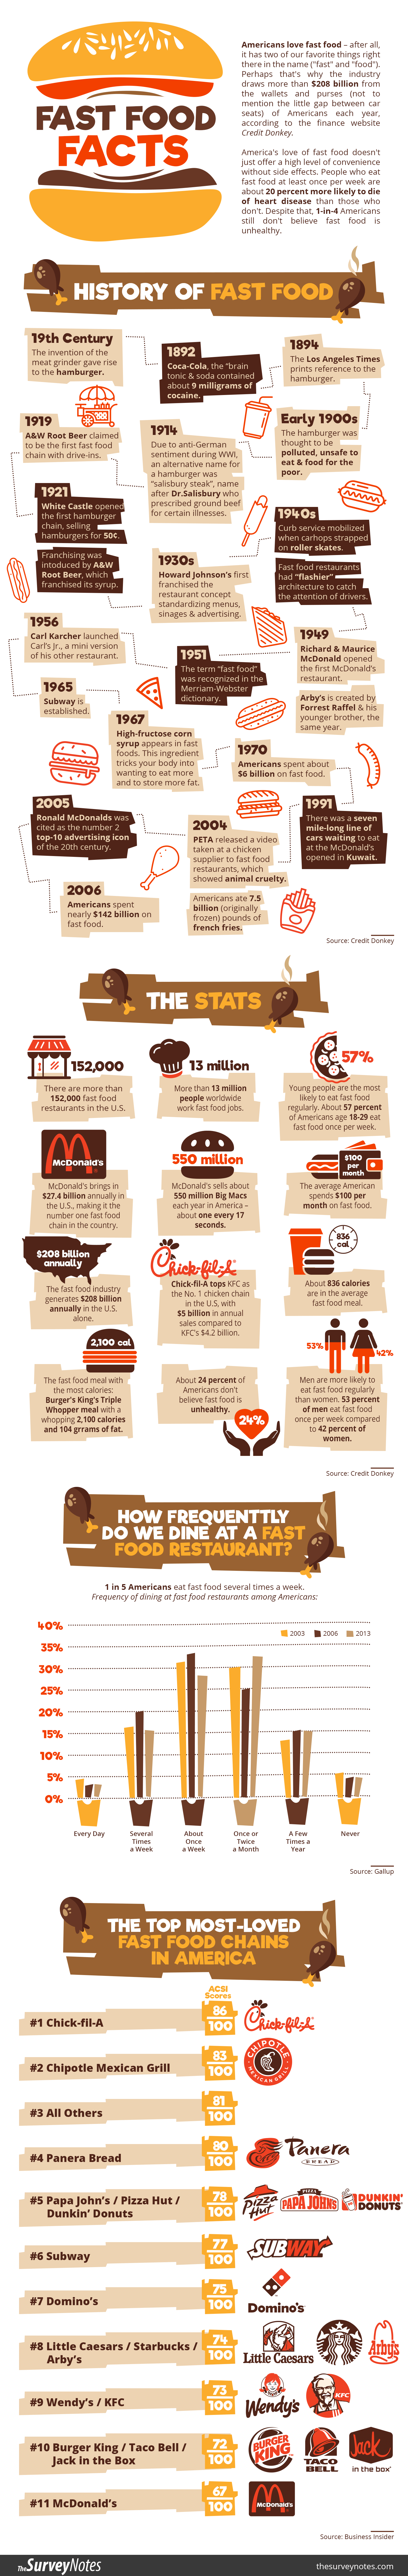 Us Fast Food Industry Statistics